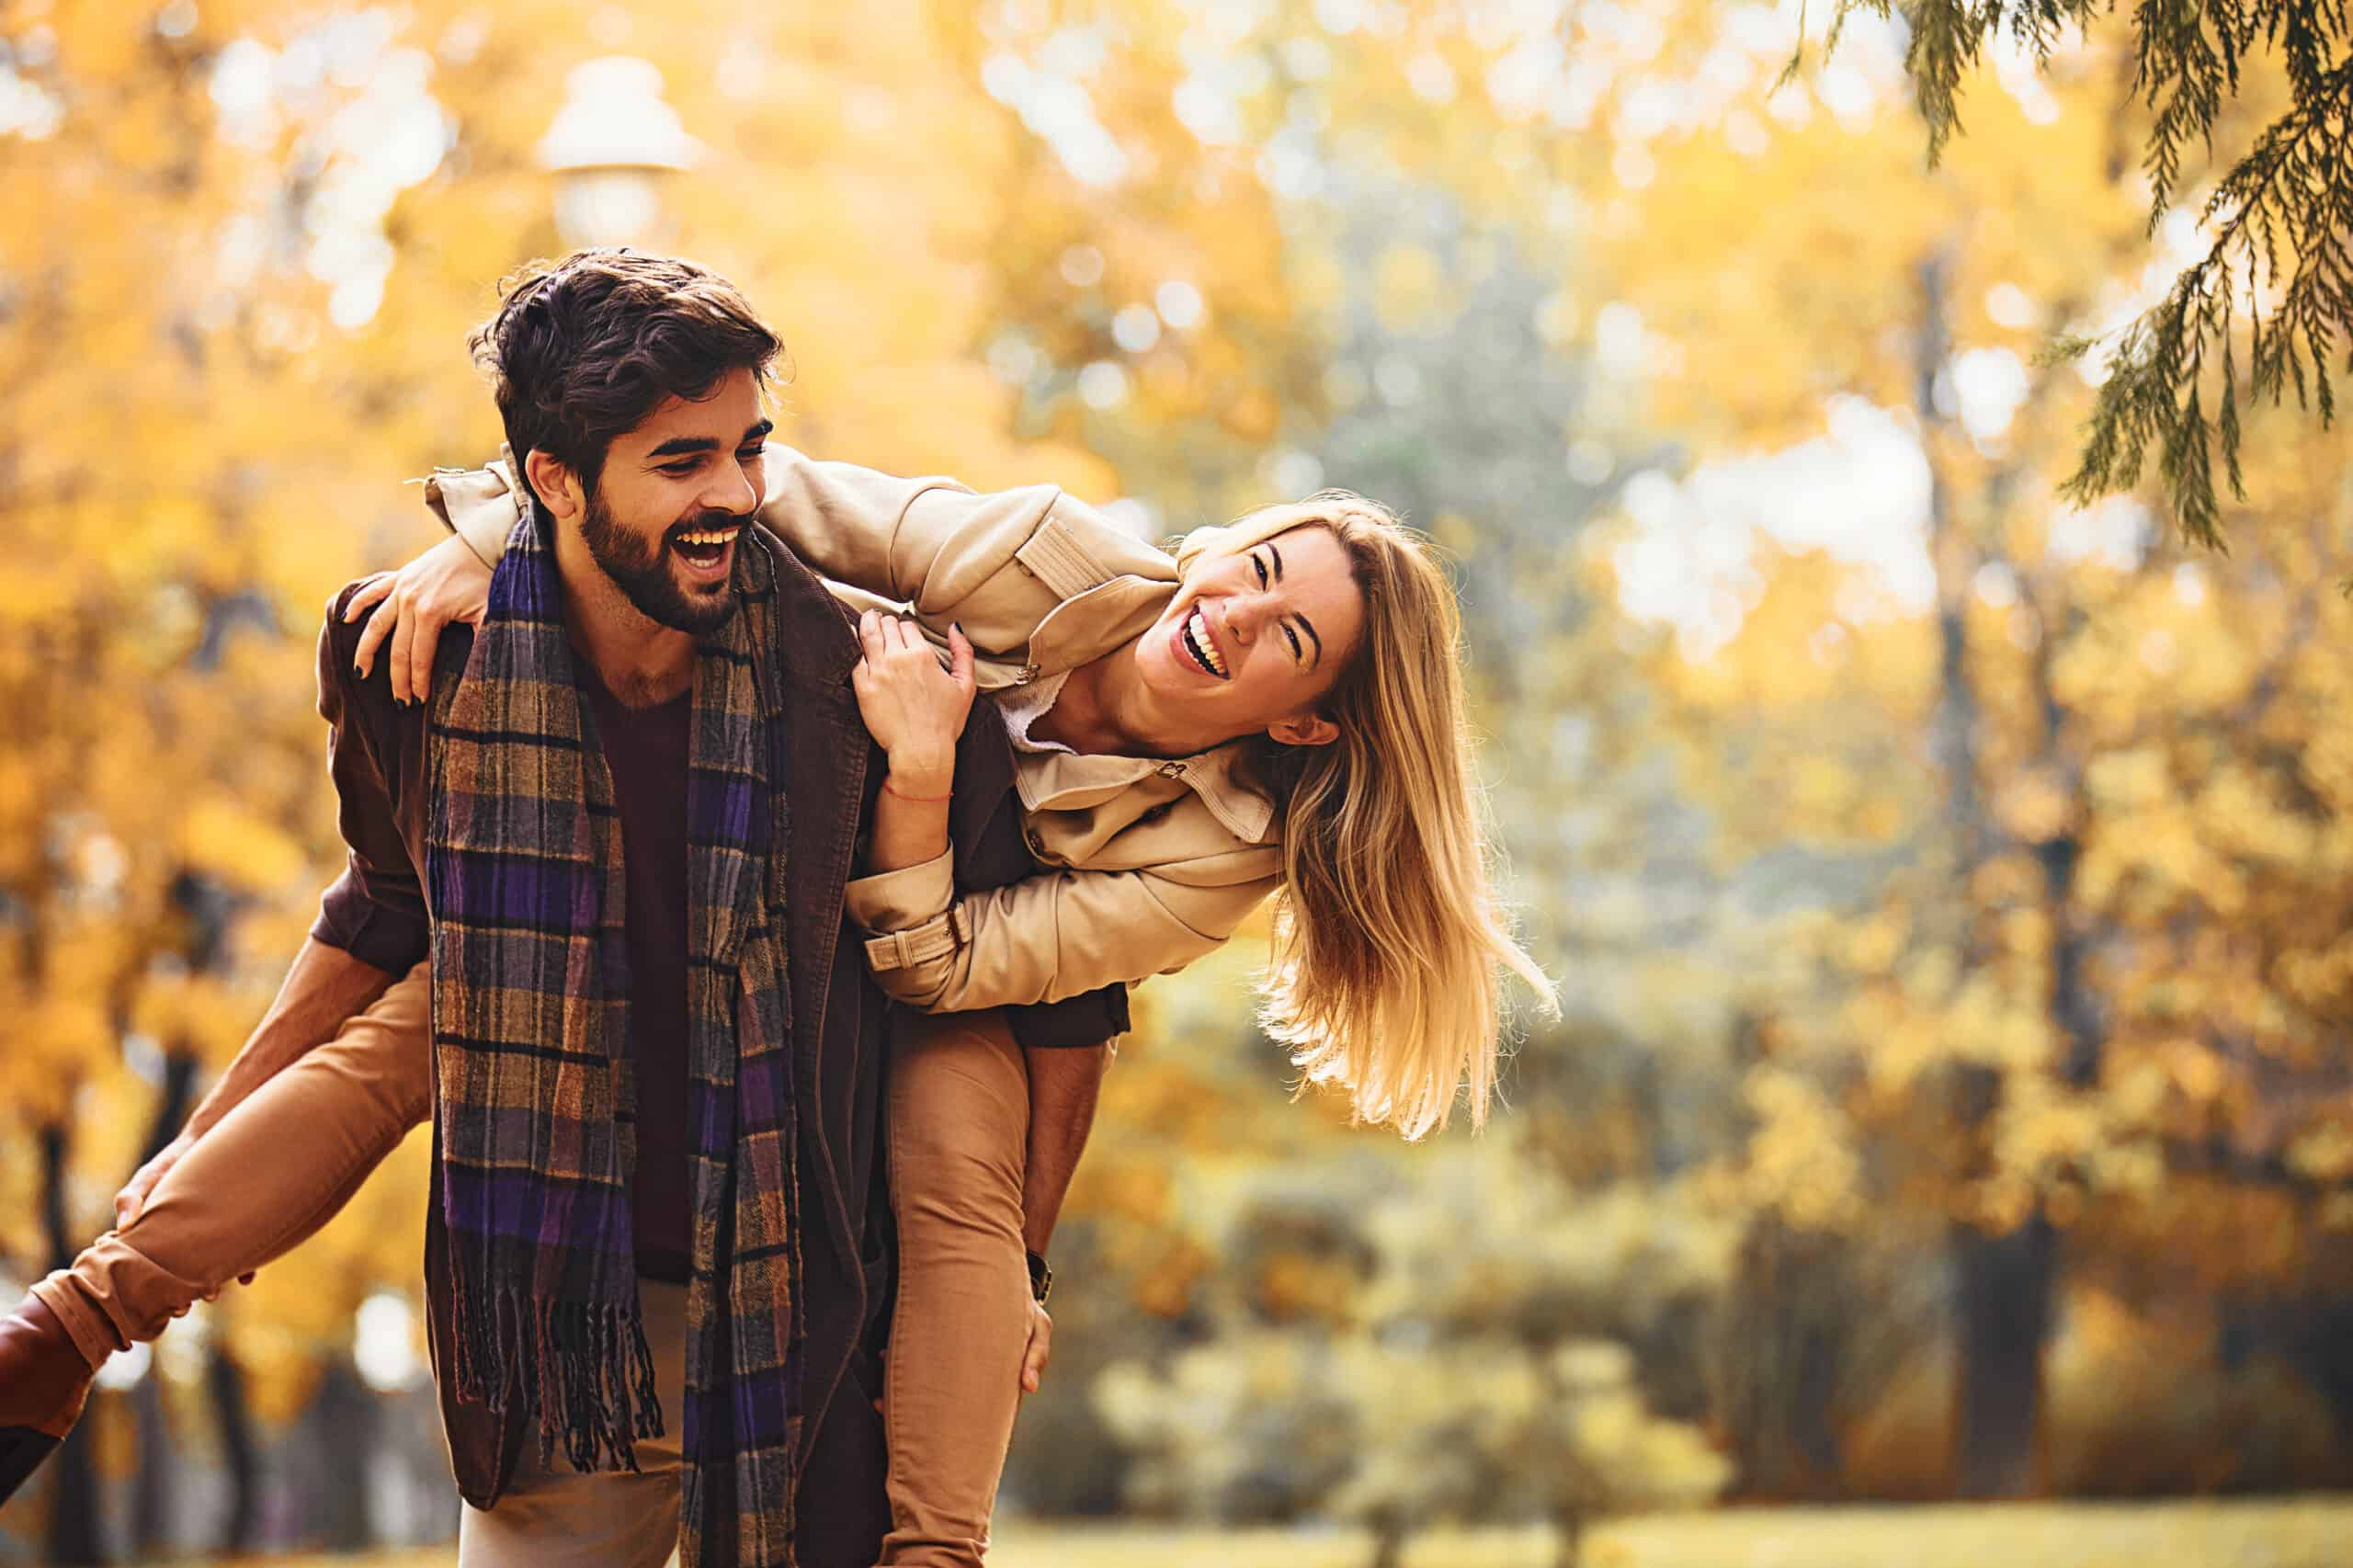 couple laughing and playing in fall foliage, autumn